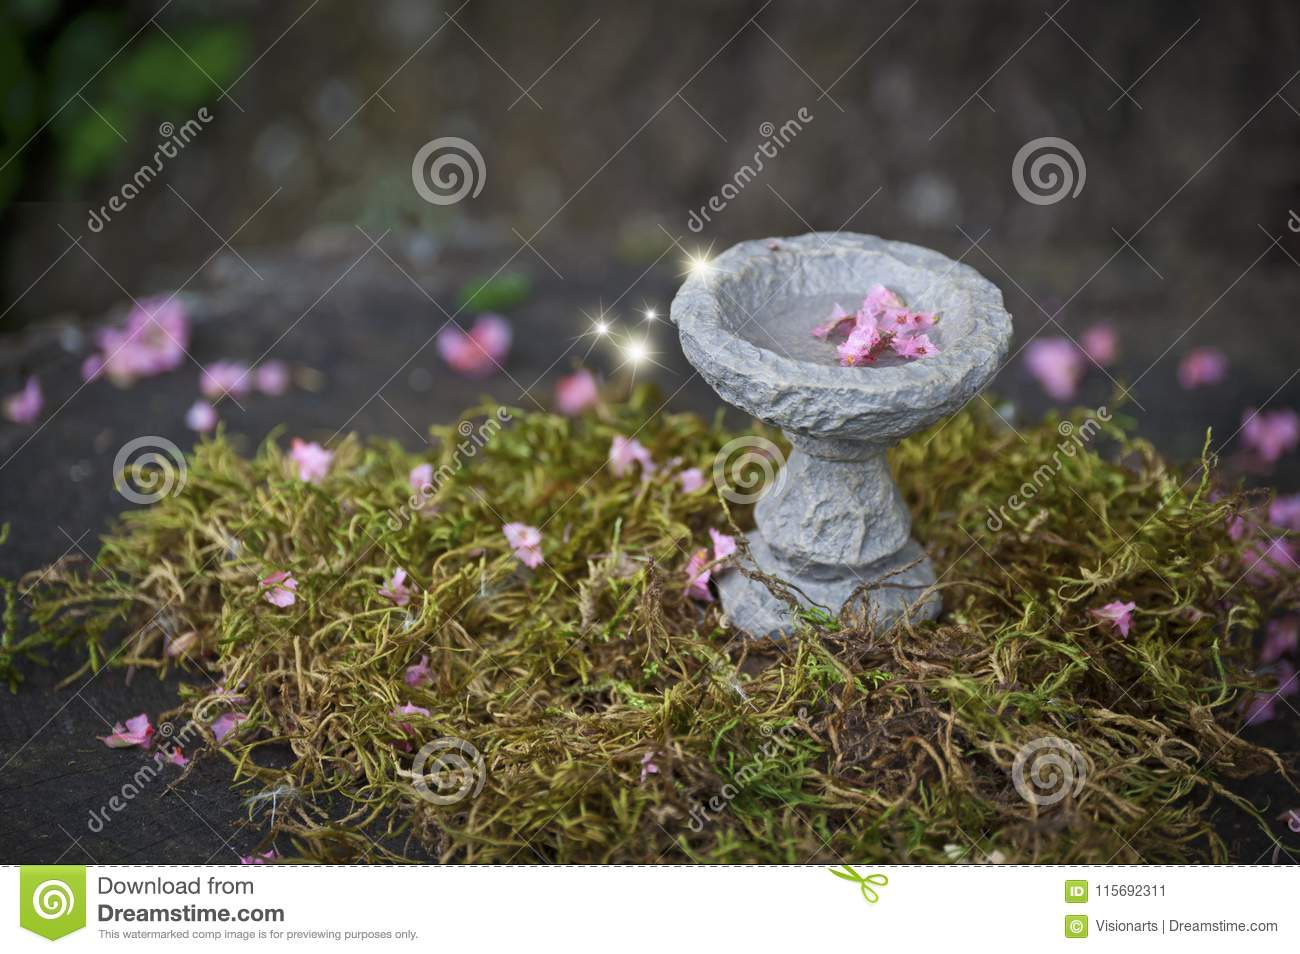 Fairy bird bath with pink flowers and glowing lights